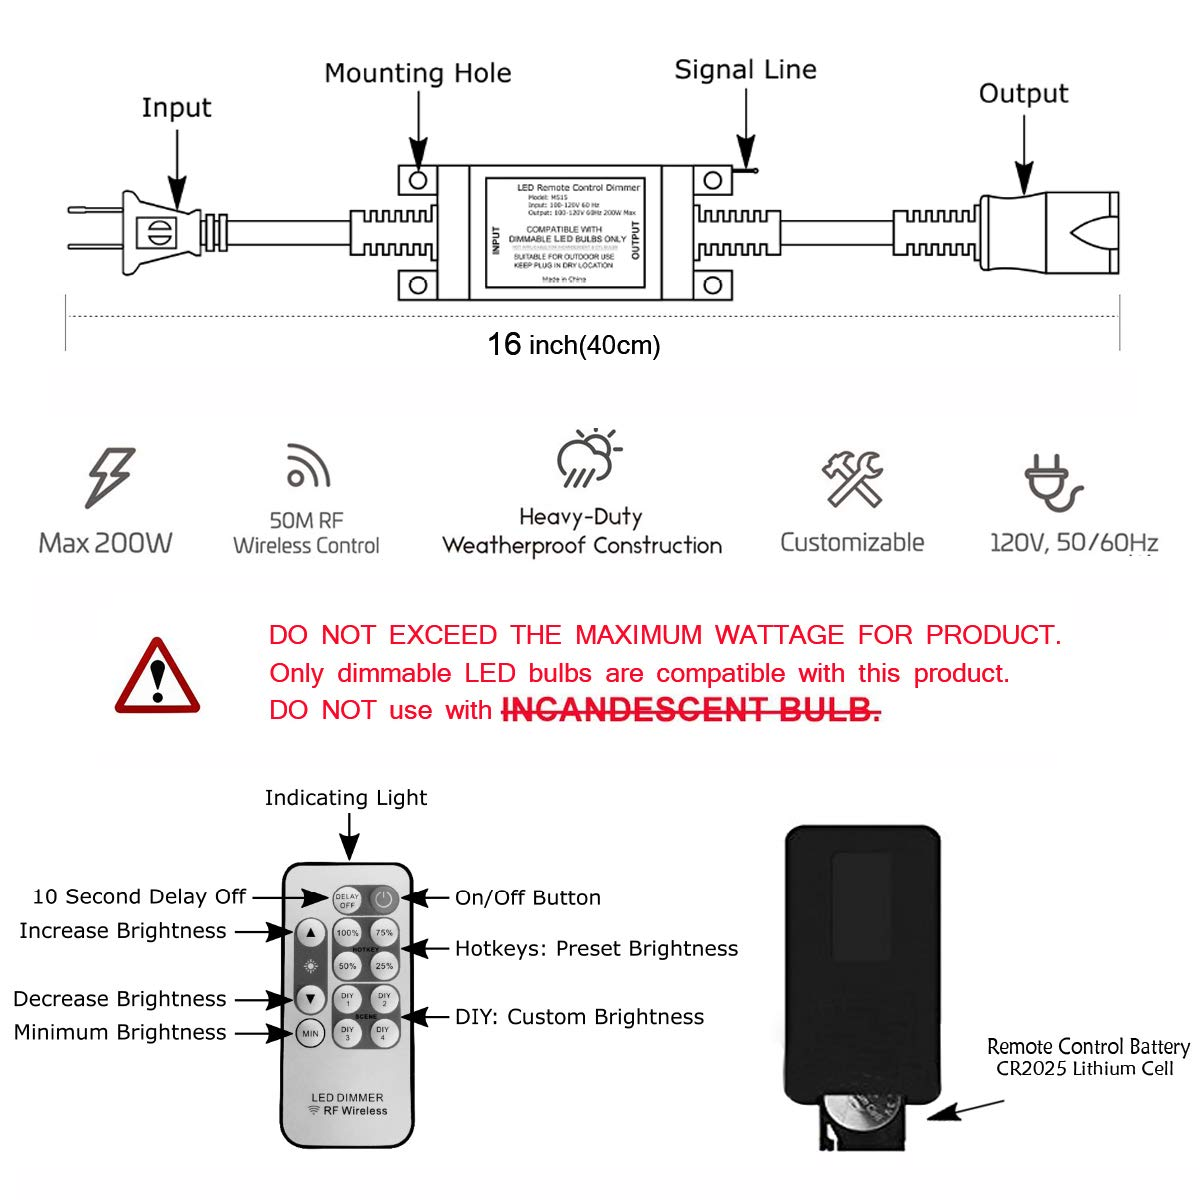 Outdoor Dimmer Wireless Rf Smart Plug In Switch Controlled Lightdimmer Remote Control Dimming Controller 200w Max Power 150ft Range Ip68 Waterproof Stepless